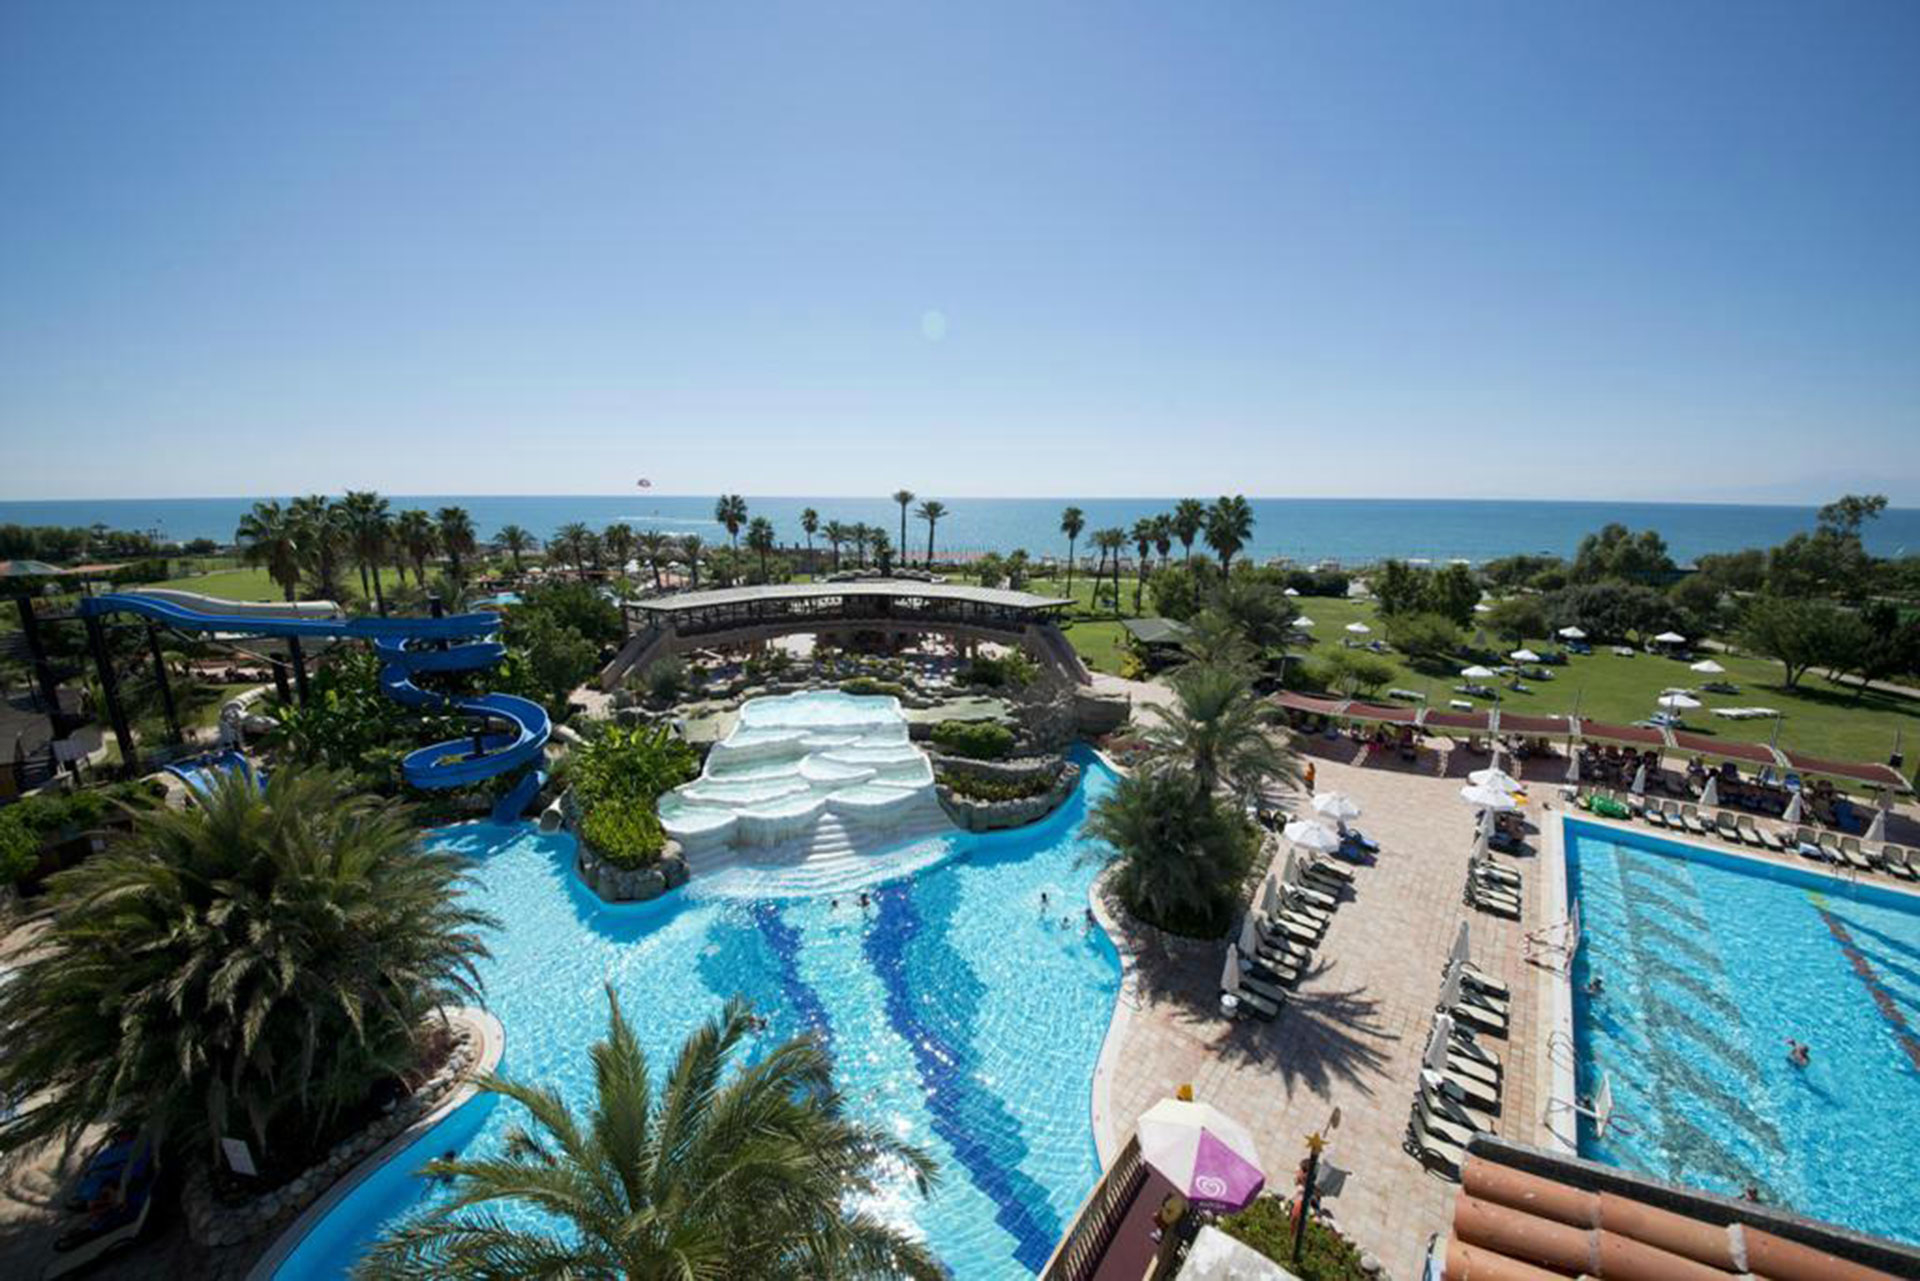 All Inclusive Resort 7 Best All Inclusive Europe Vacations For Families Family